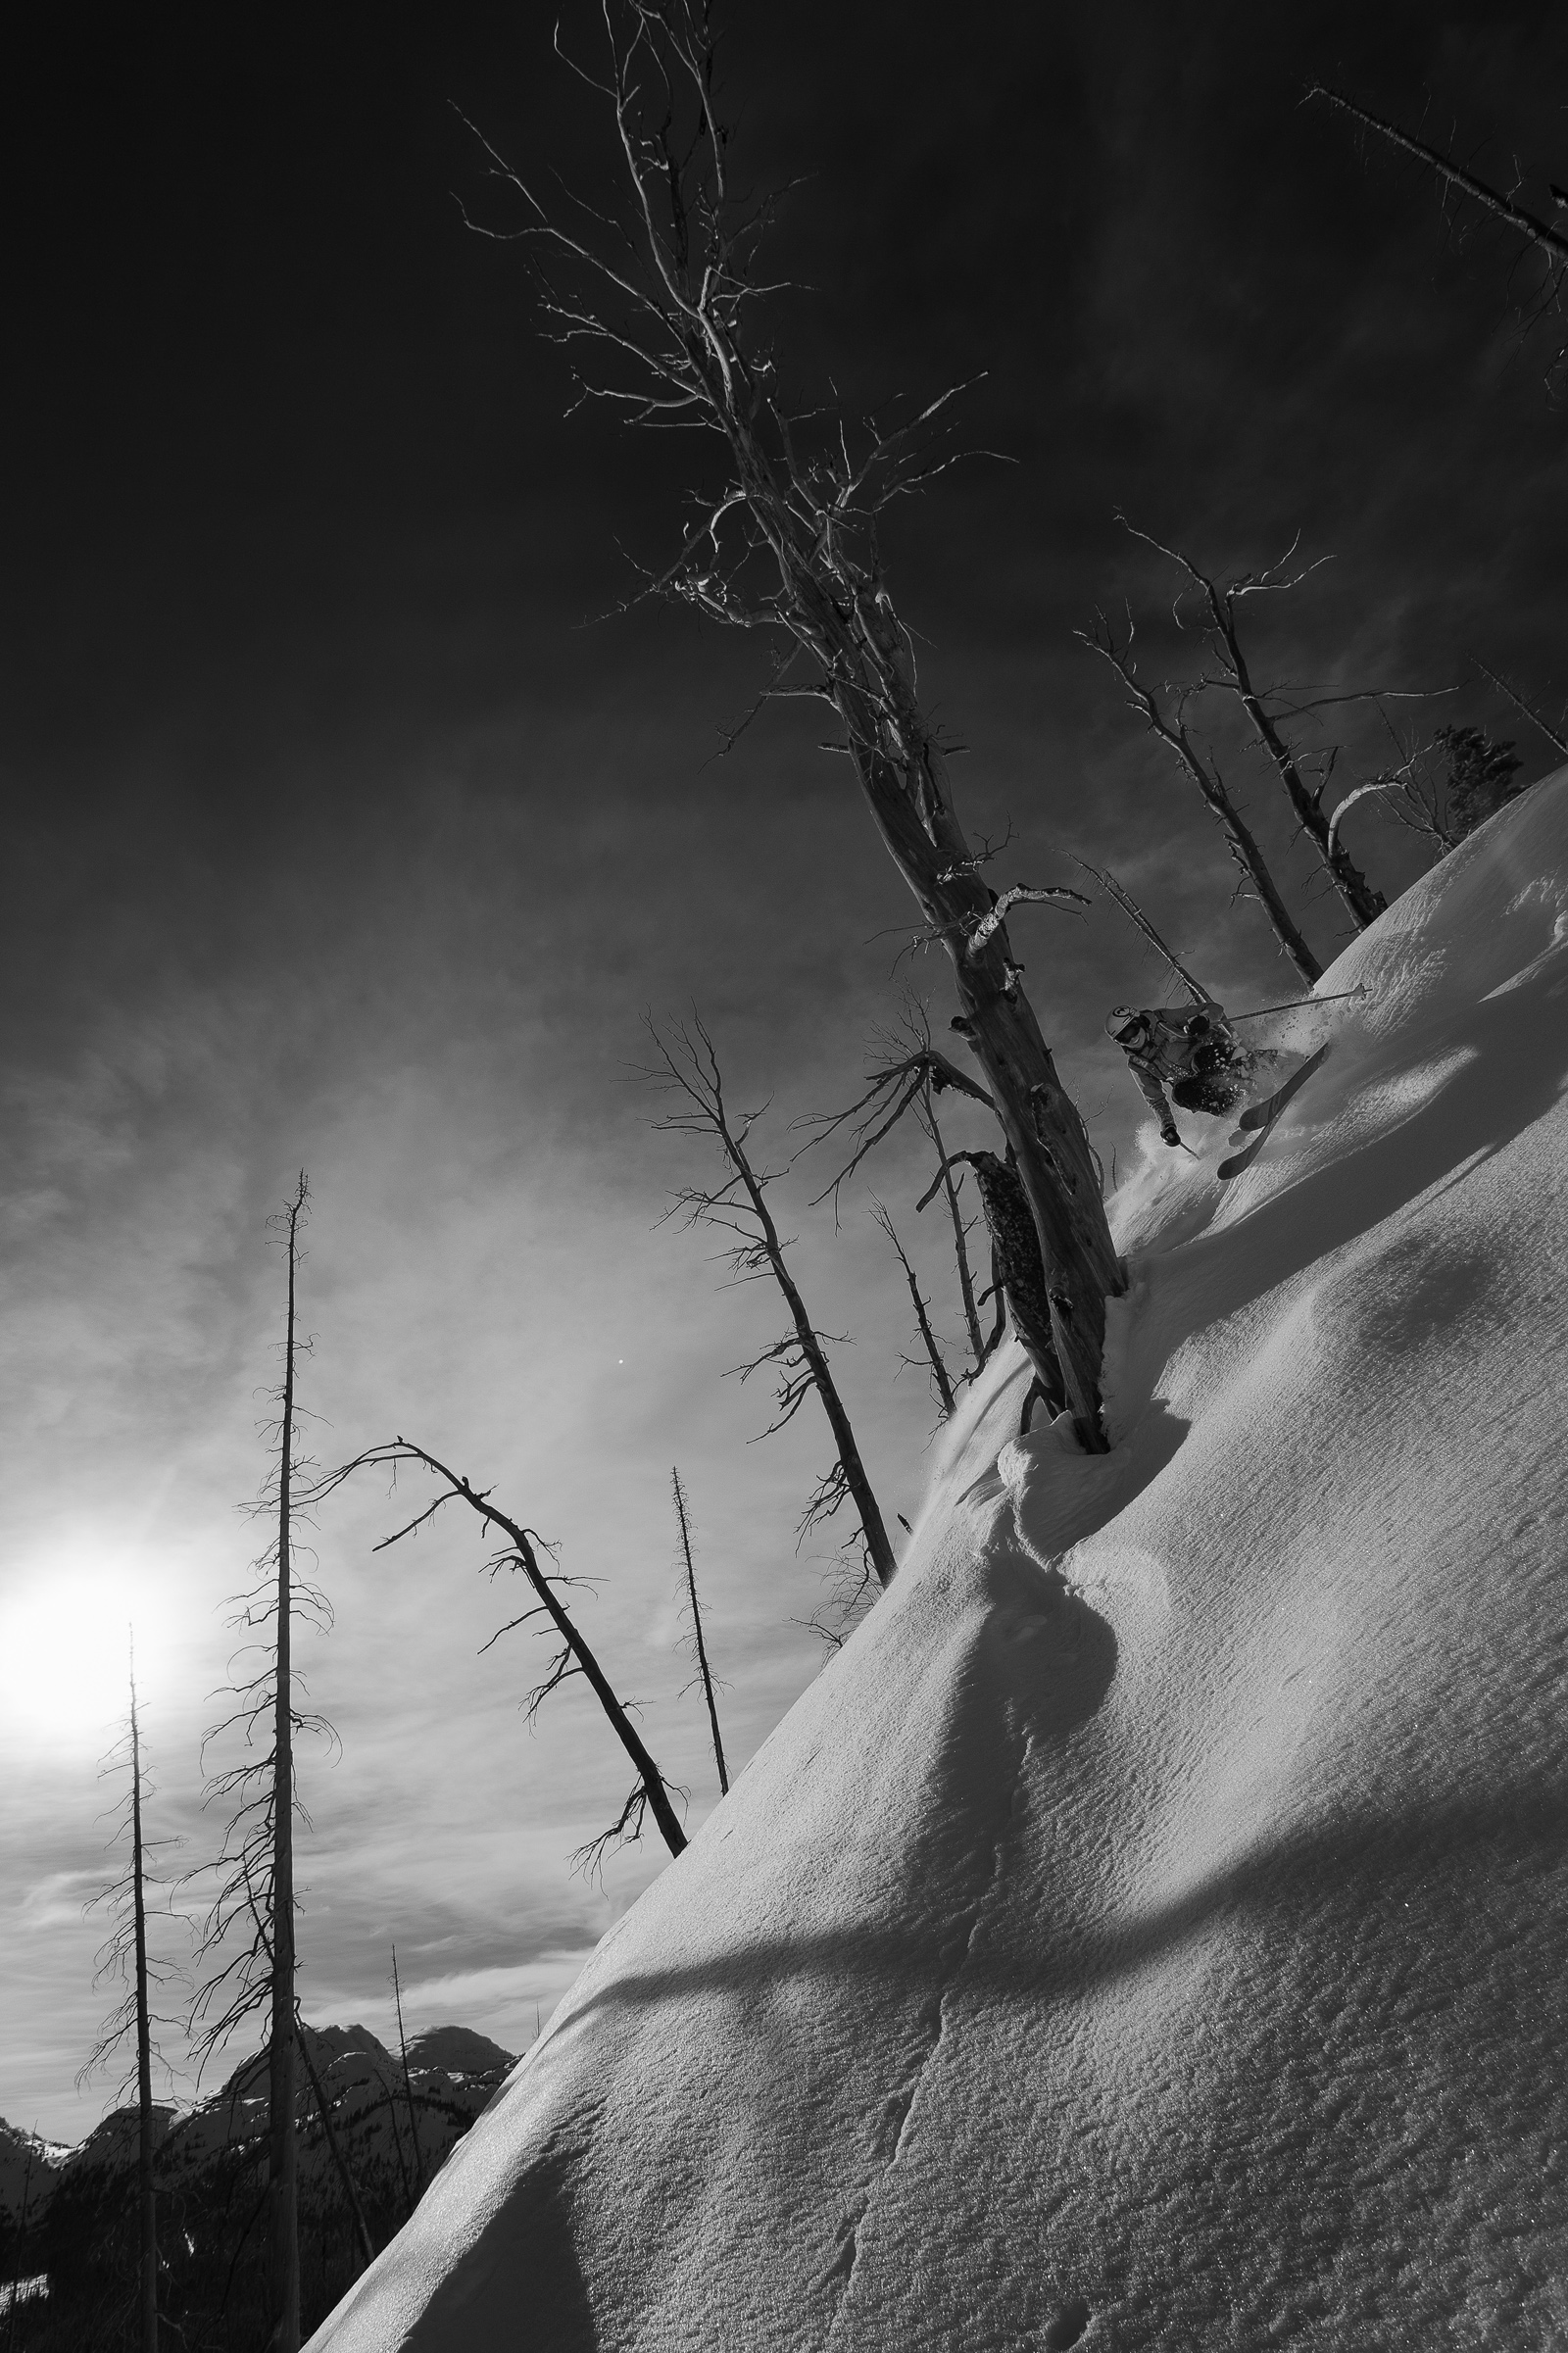 20130114_backcountry_061-Edit-2-2